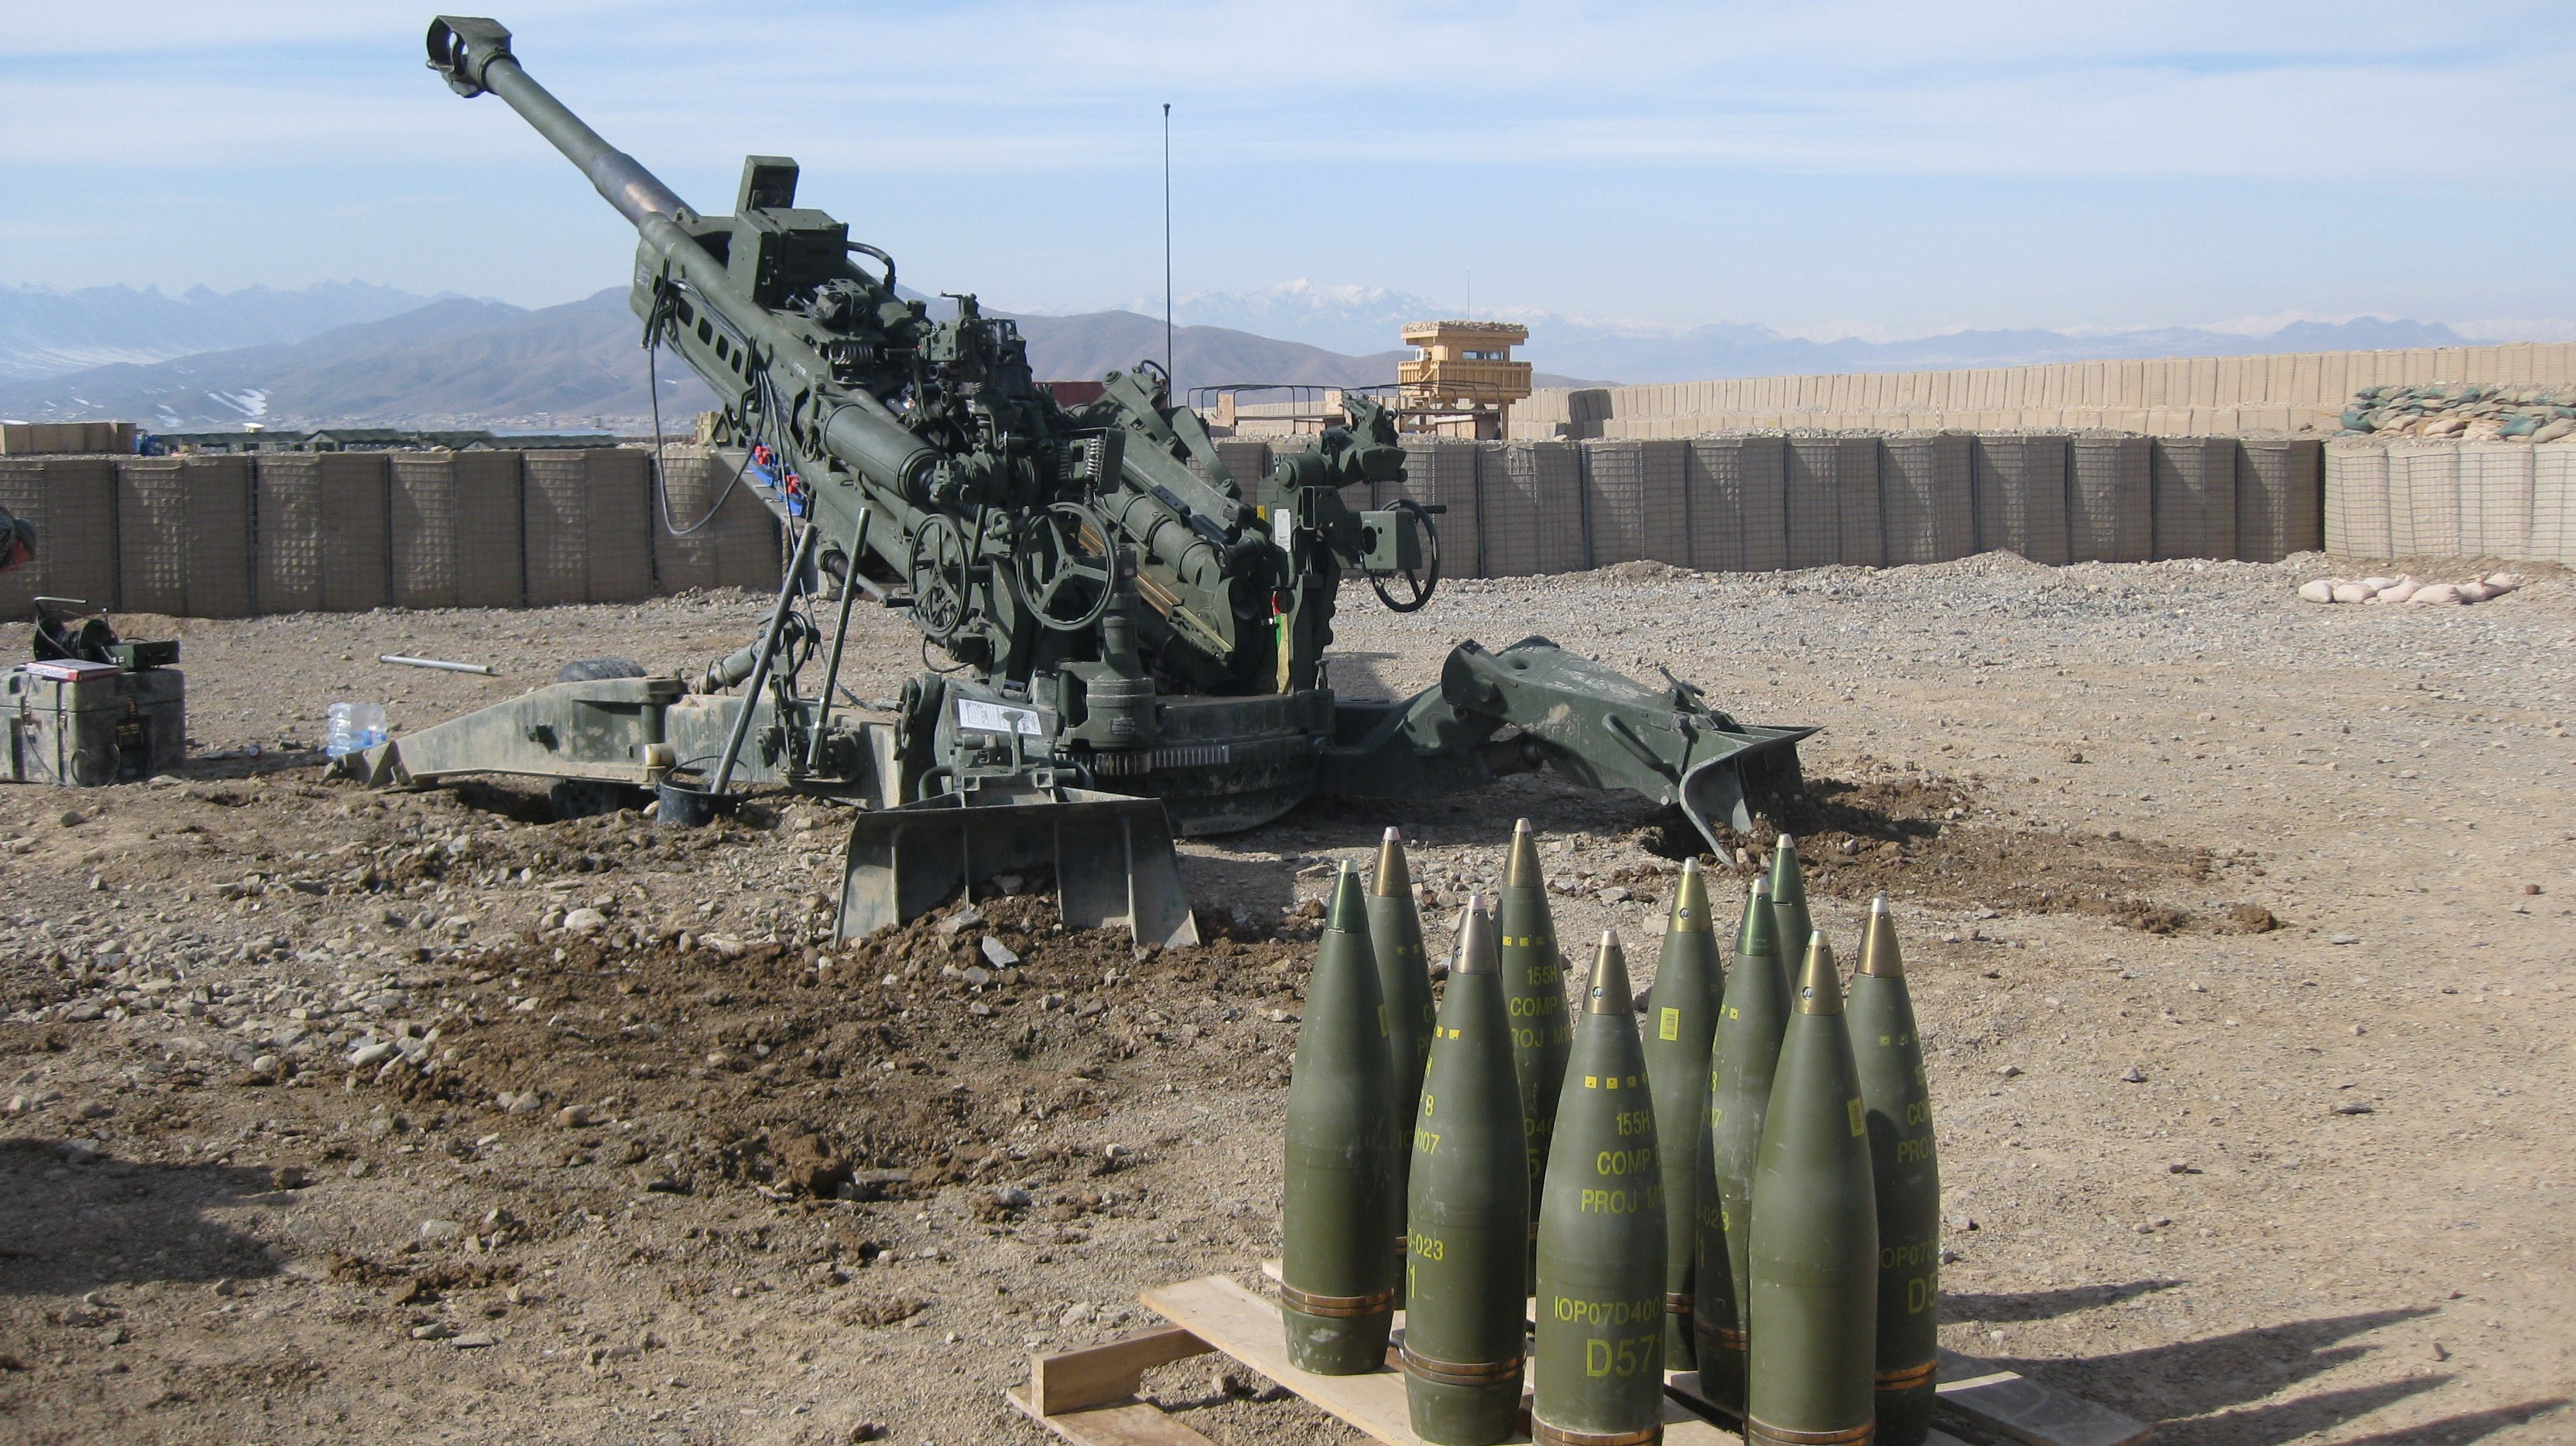 Marines Sling Load M777 Howitzer To Firebase & Fire The Gun - YouTube